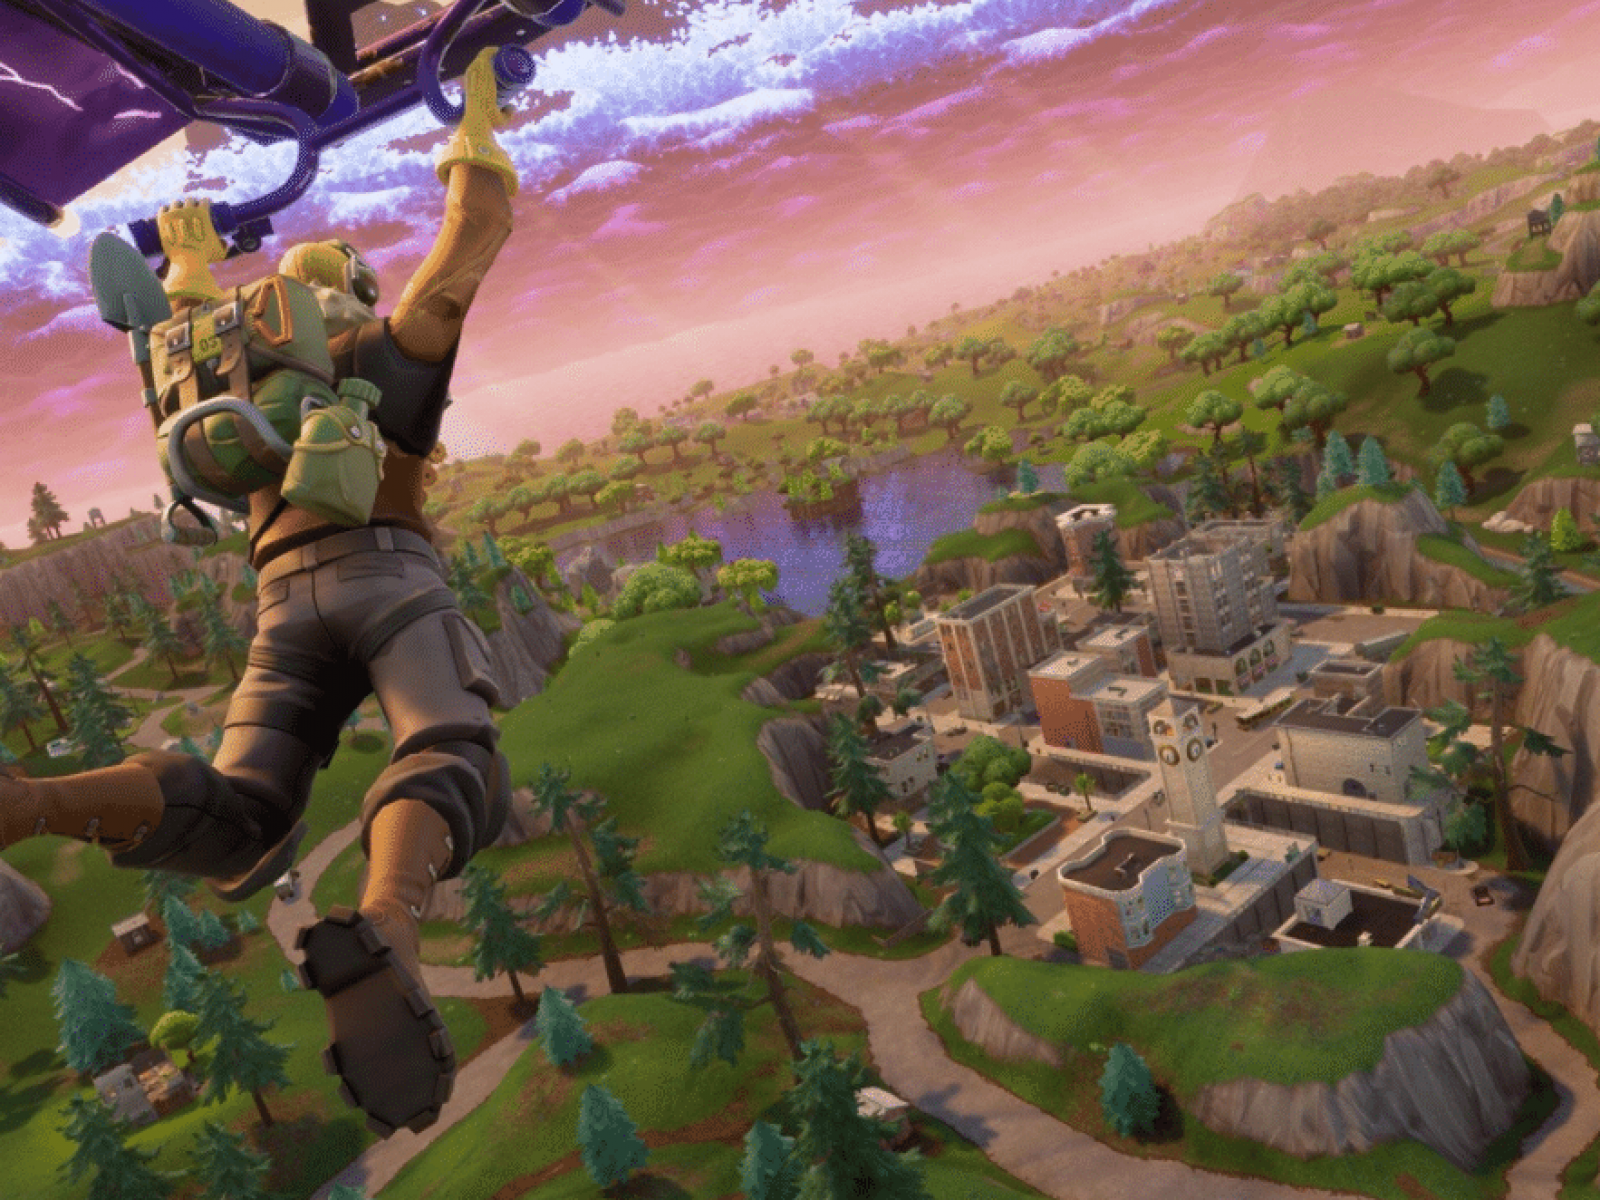 Fortnite' on Switch to Get Headset Voice Chat, Touch